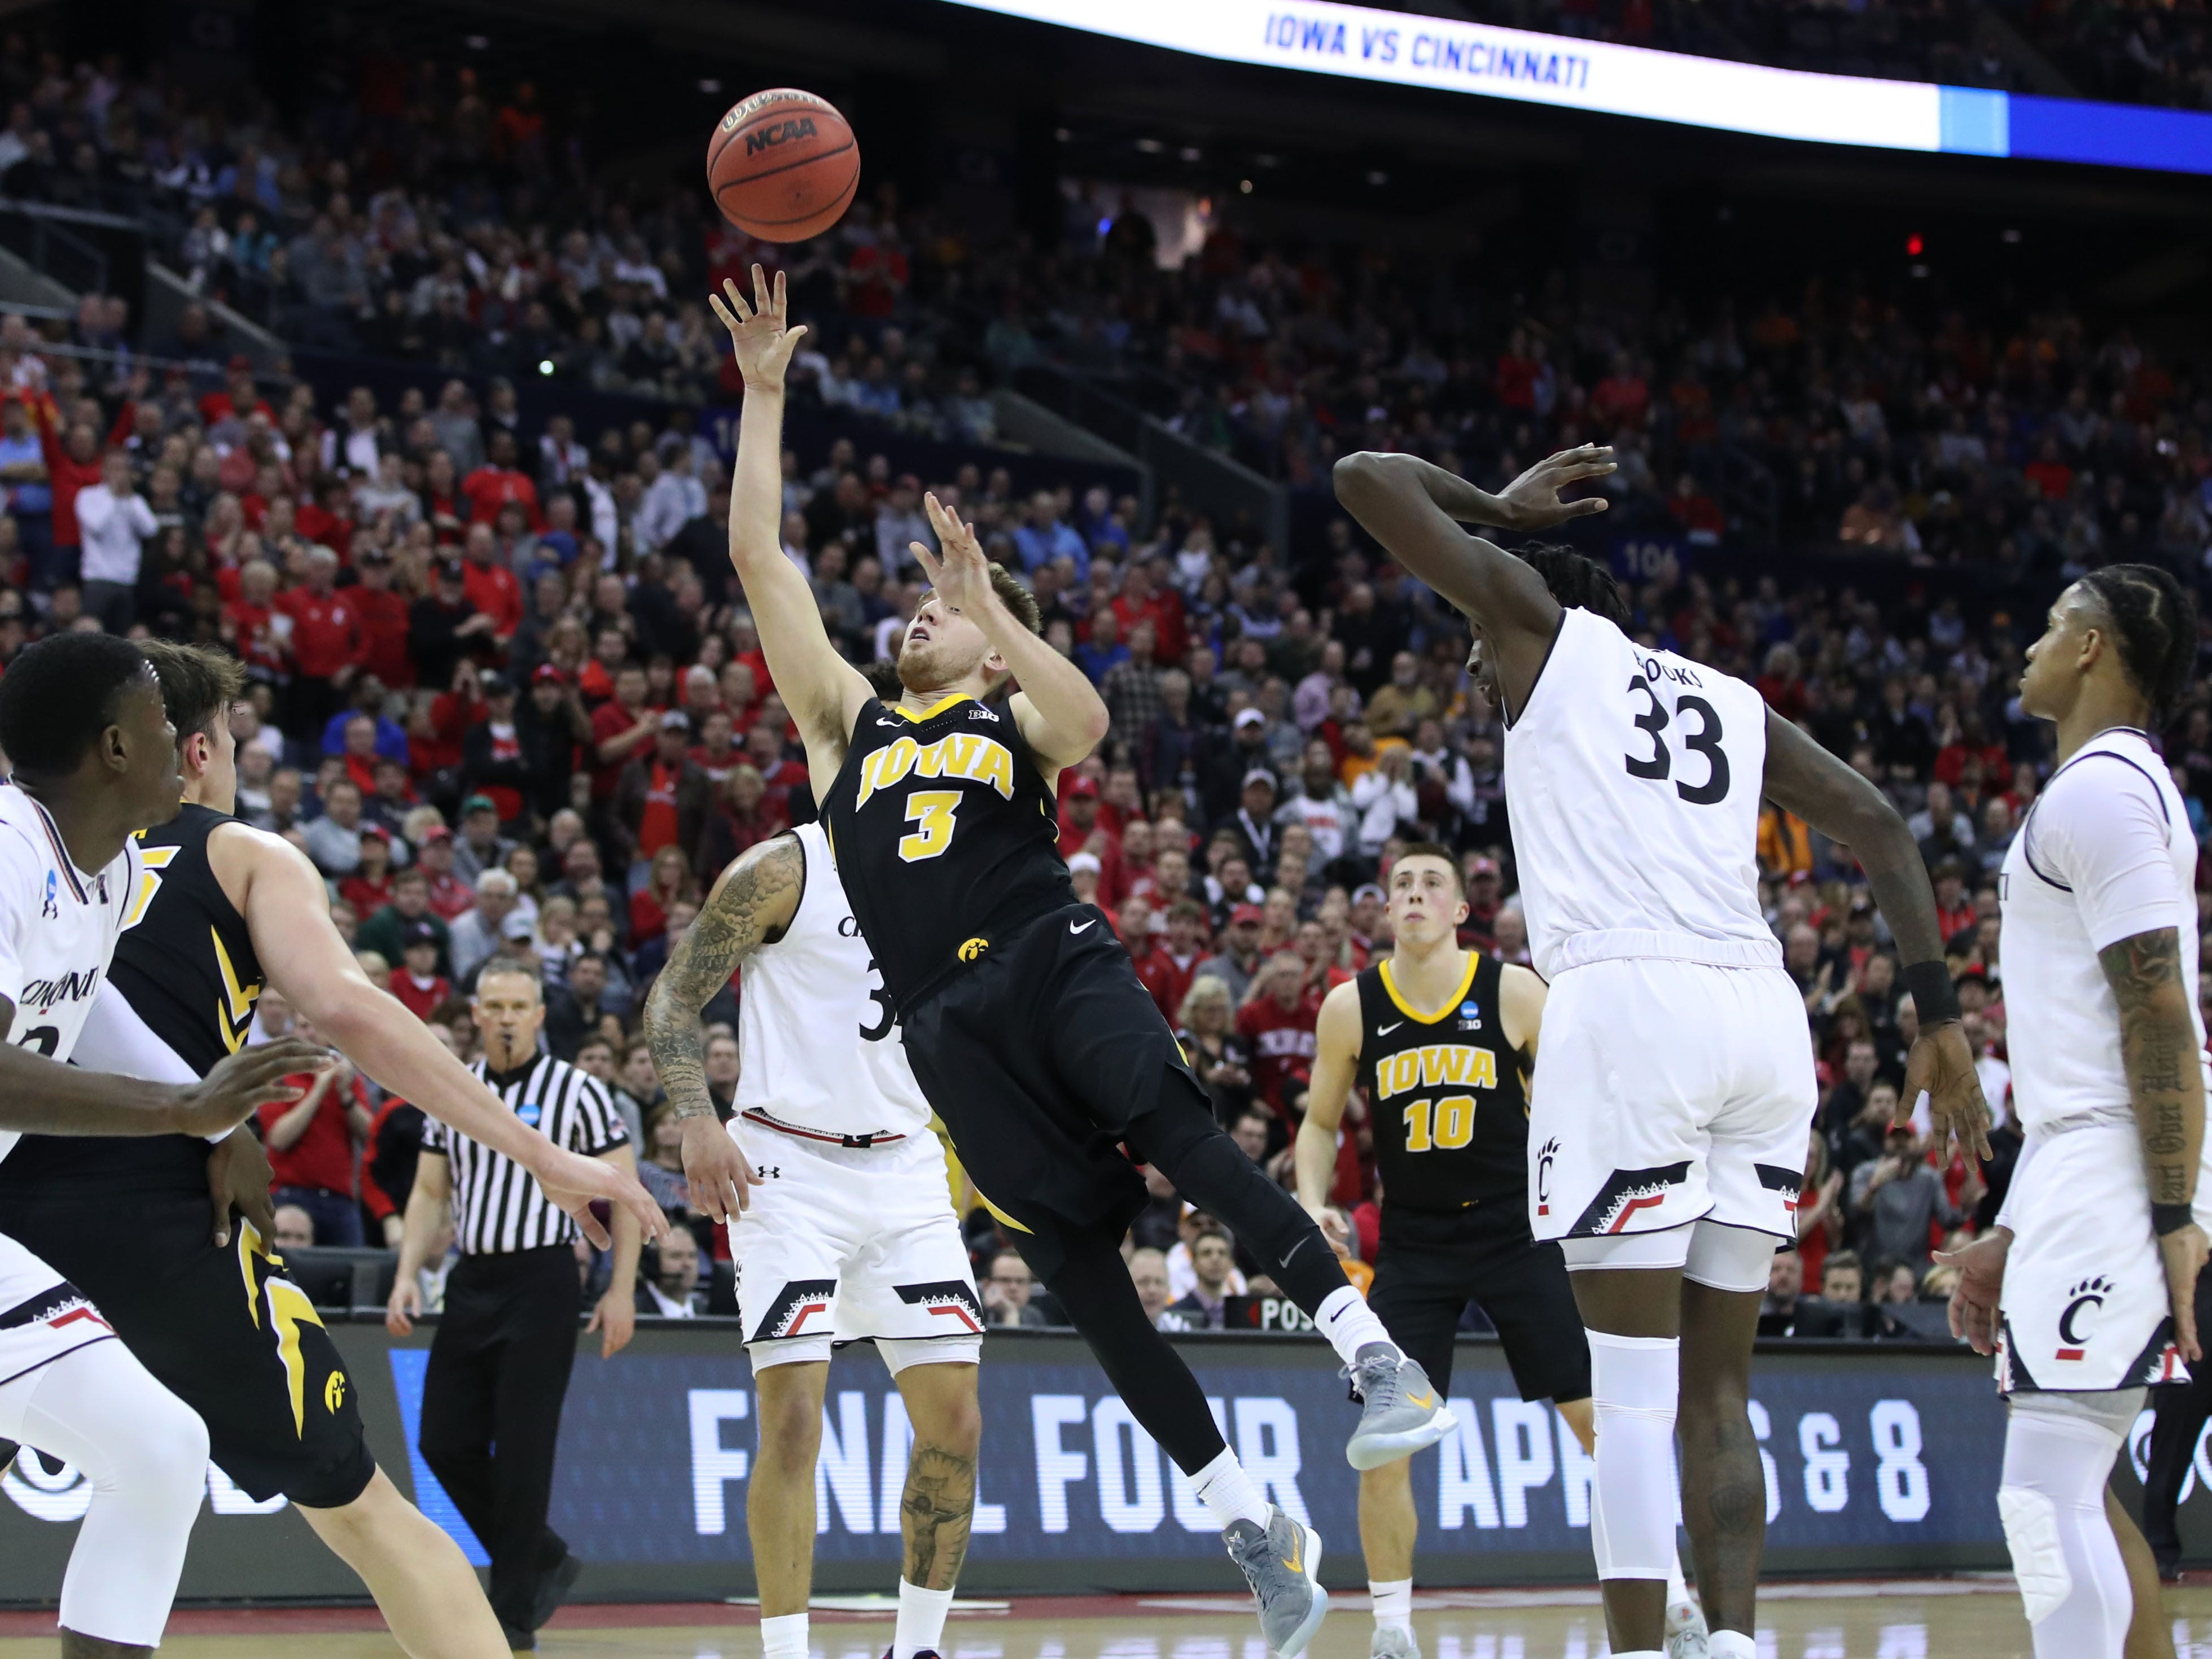 First round: Iowa Hawkeyes guard Jordan Bohannon shoots the ball during his team's win over the Cincinnati Bearcats.